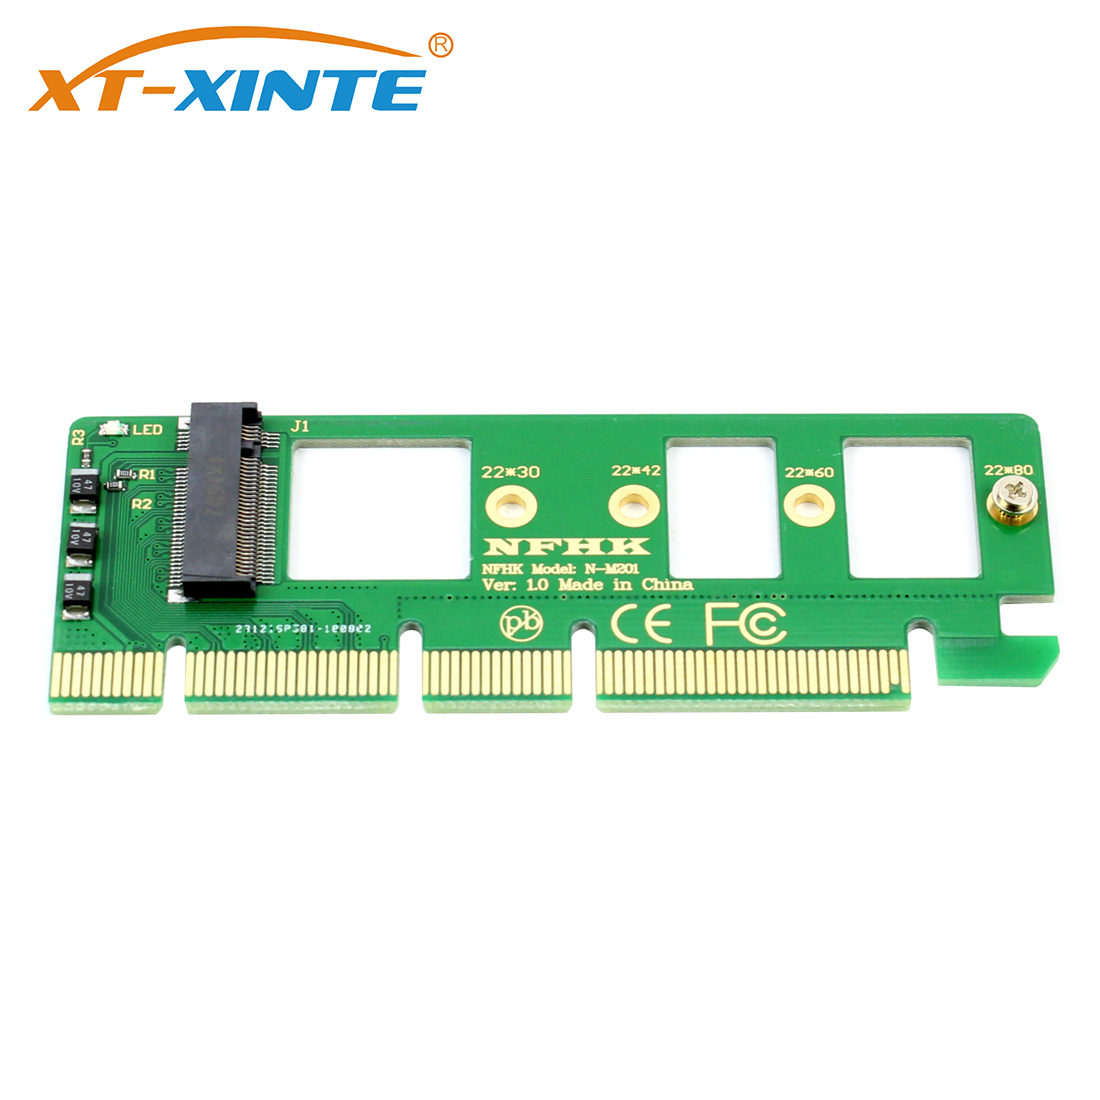 <font><b>PCIE</b></font> to <font><b>M2</b></font> Adapter PCI-E PCI Express 3.0 <font><b>X4</b></font> X8 X16 to NGFF M Key M.2 NVME AHCI SSD Riser Card Adapter for XP941 SM951 PM951 A110 image